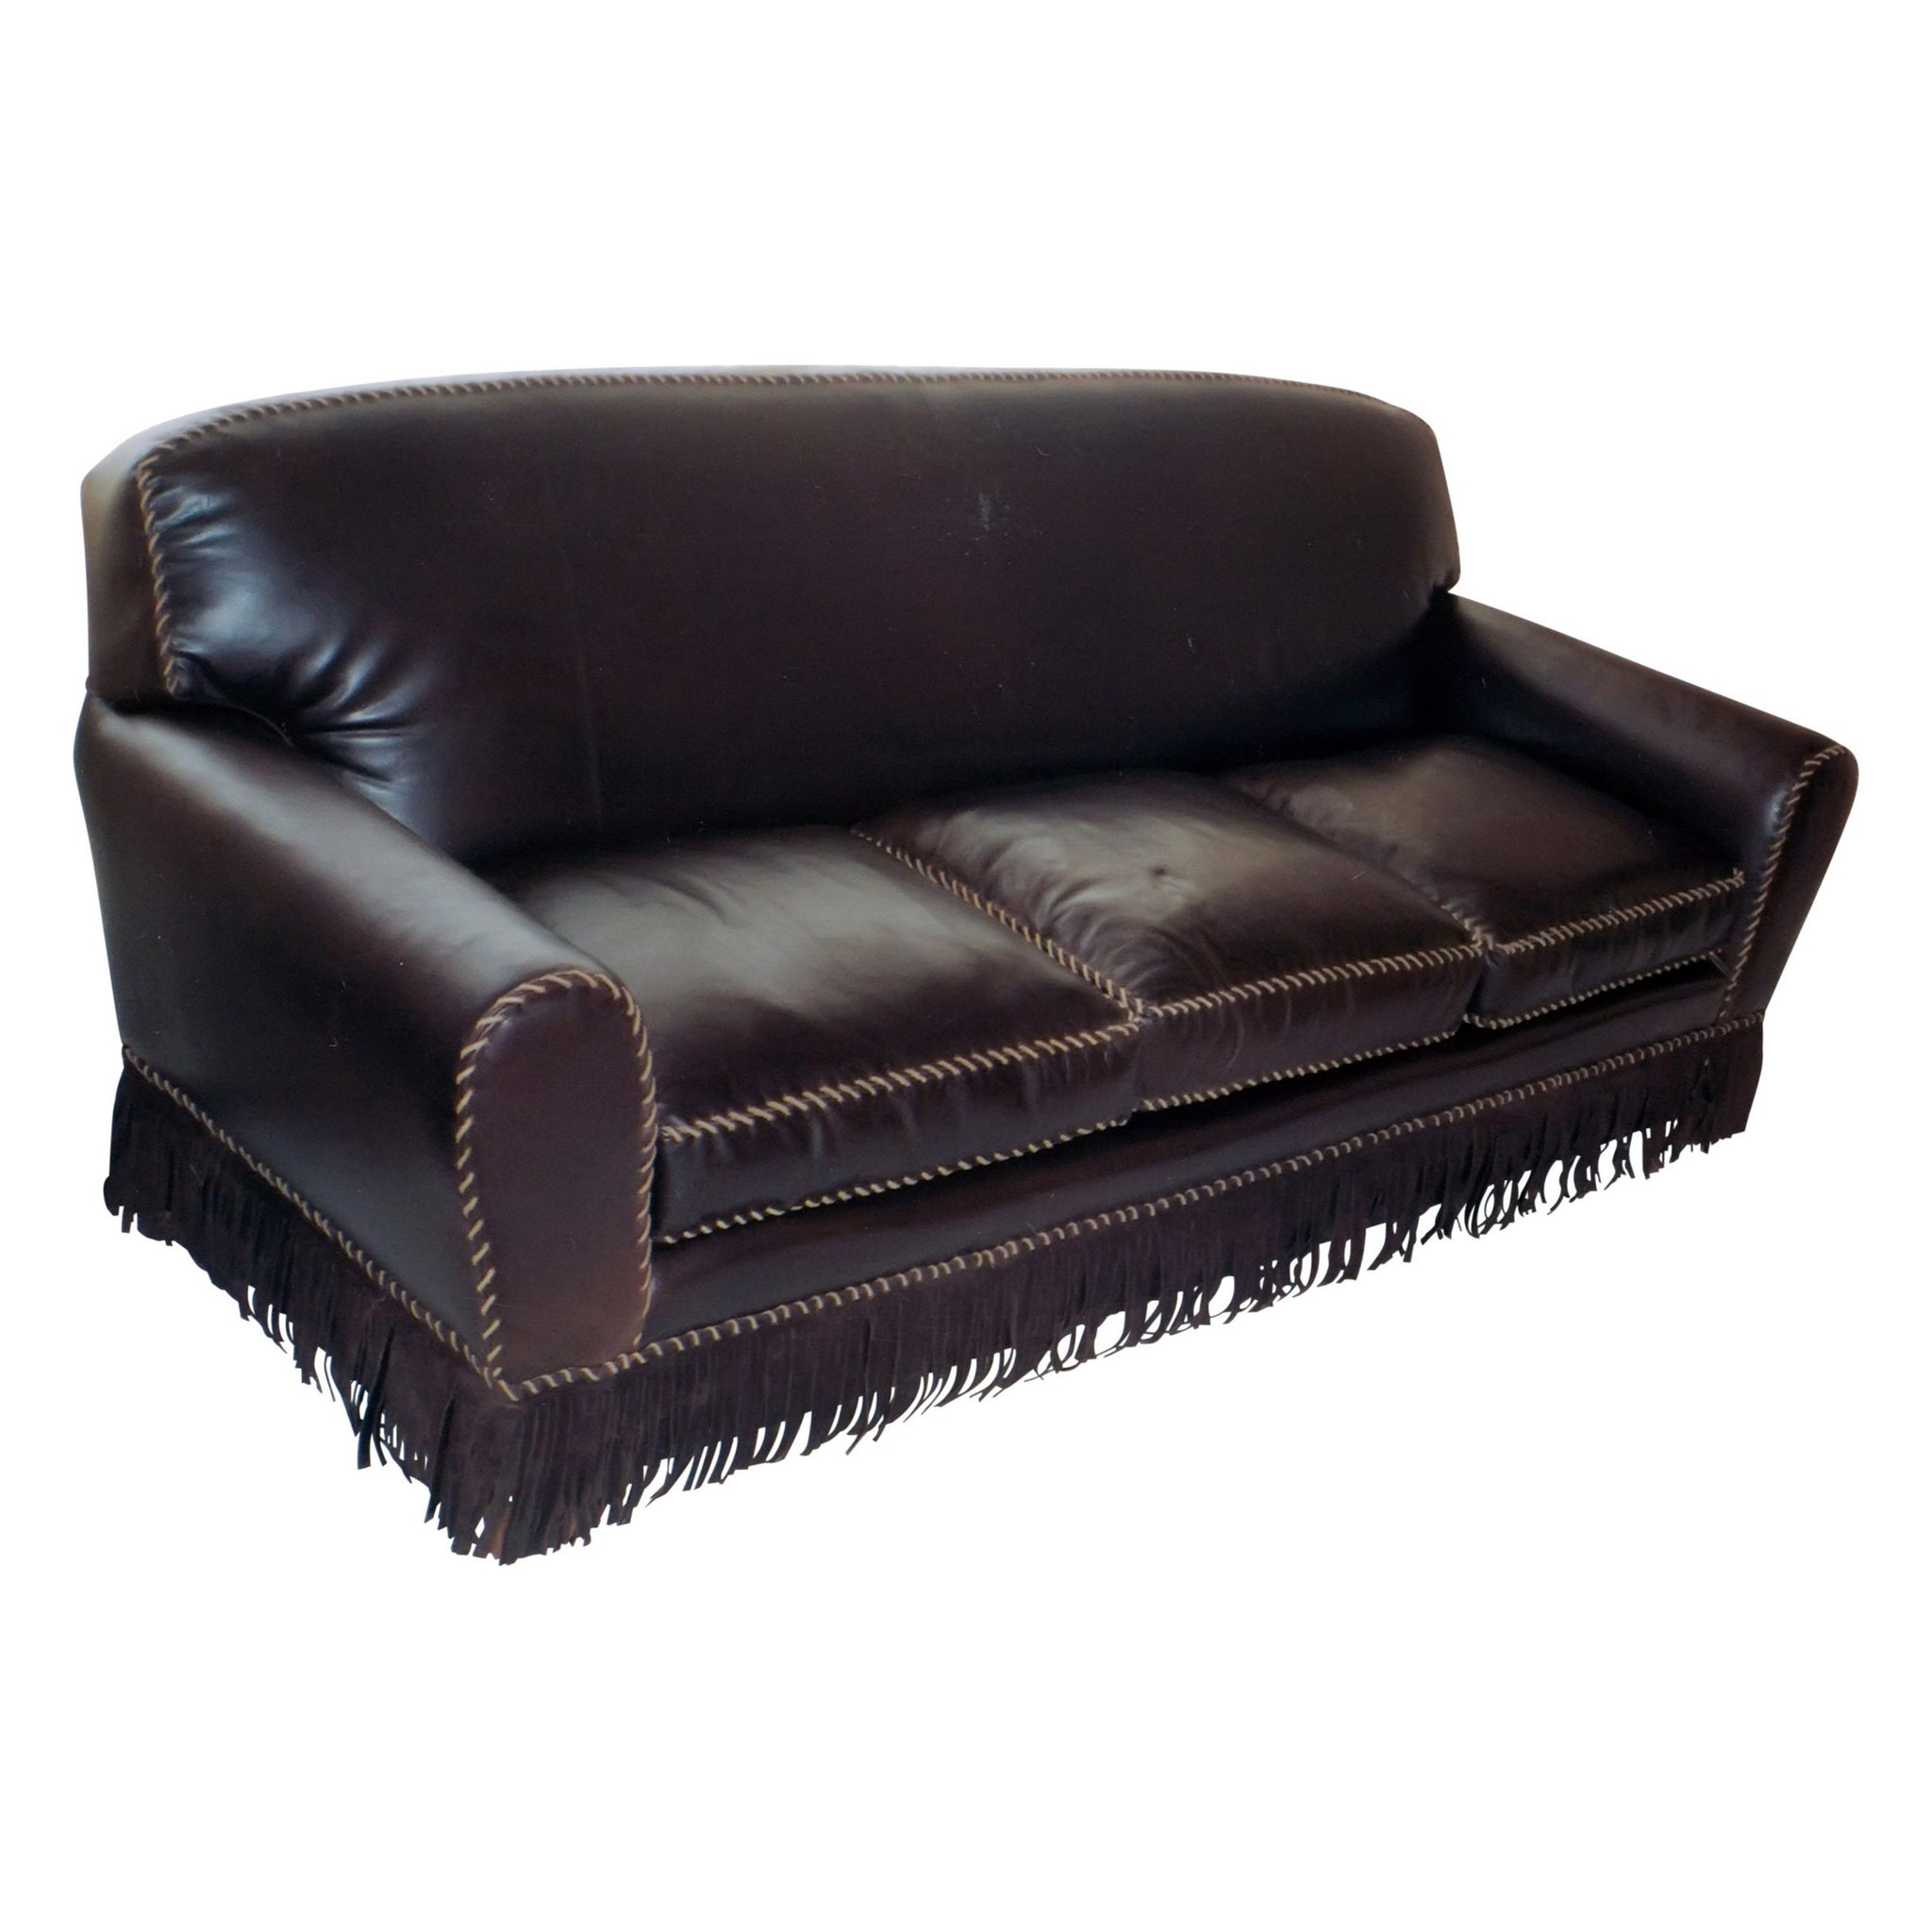 Kennedy Collection Leather Western Great Room Couch couches, kennedy collection leather